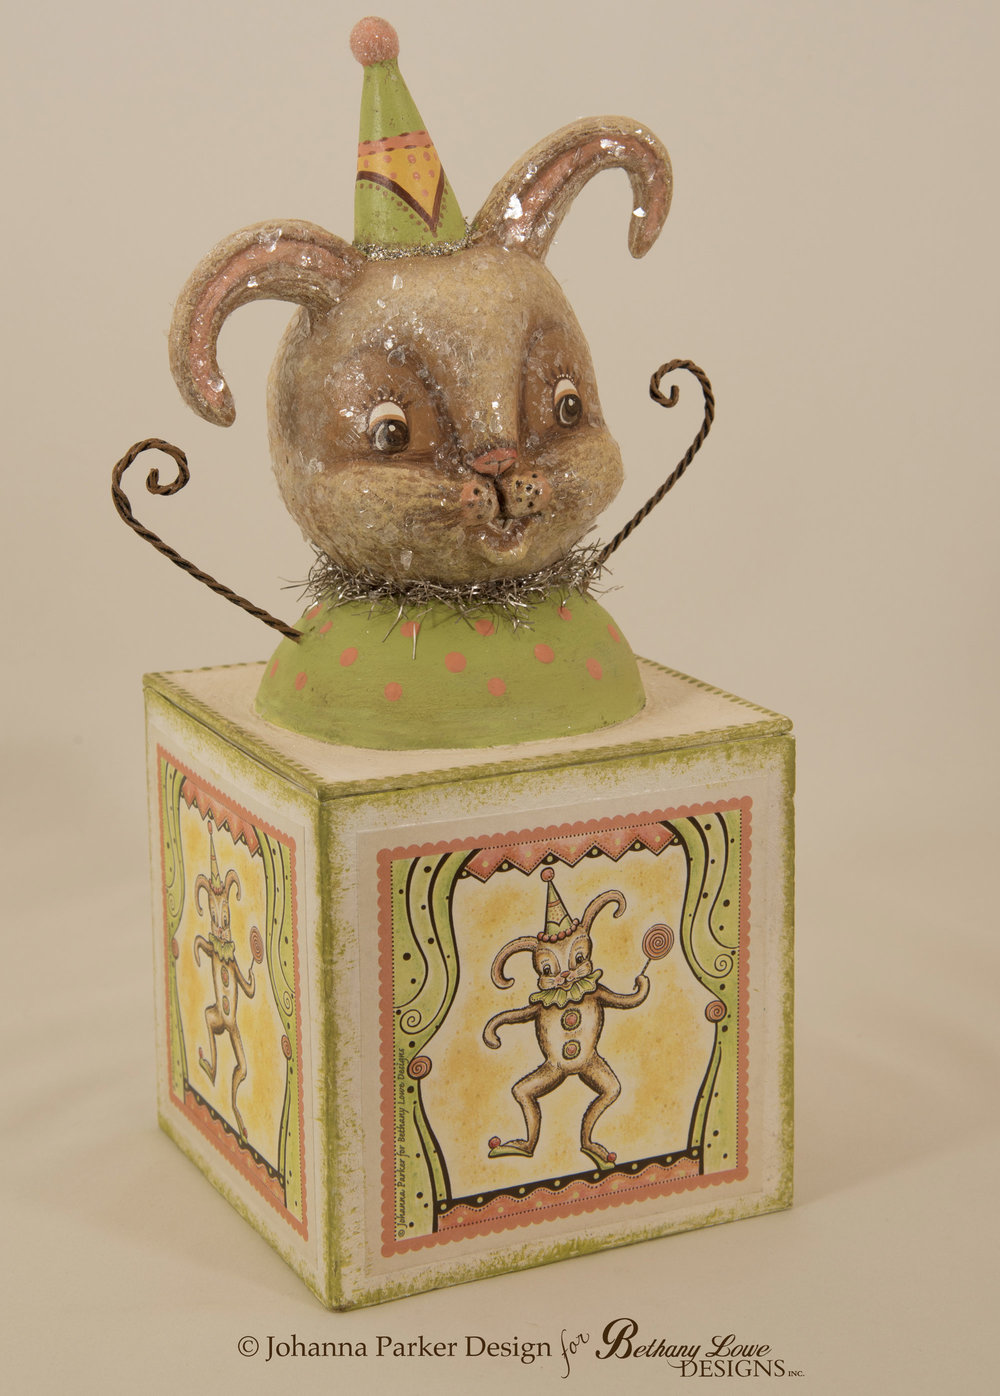 (I) Rabbit Box